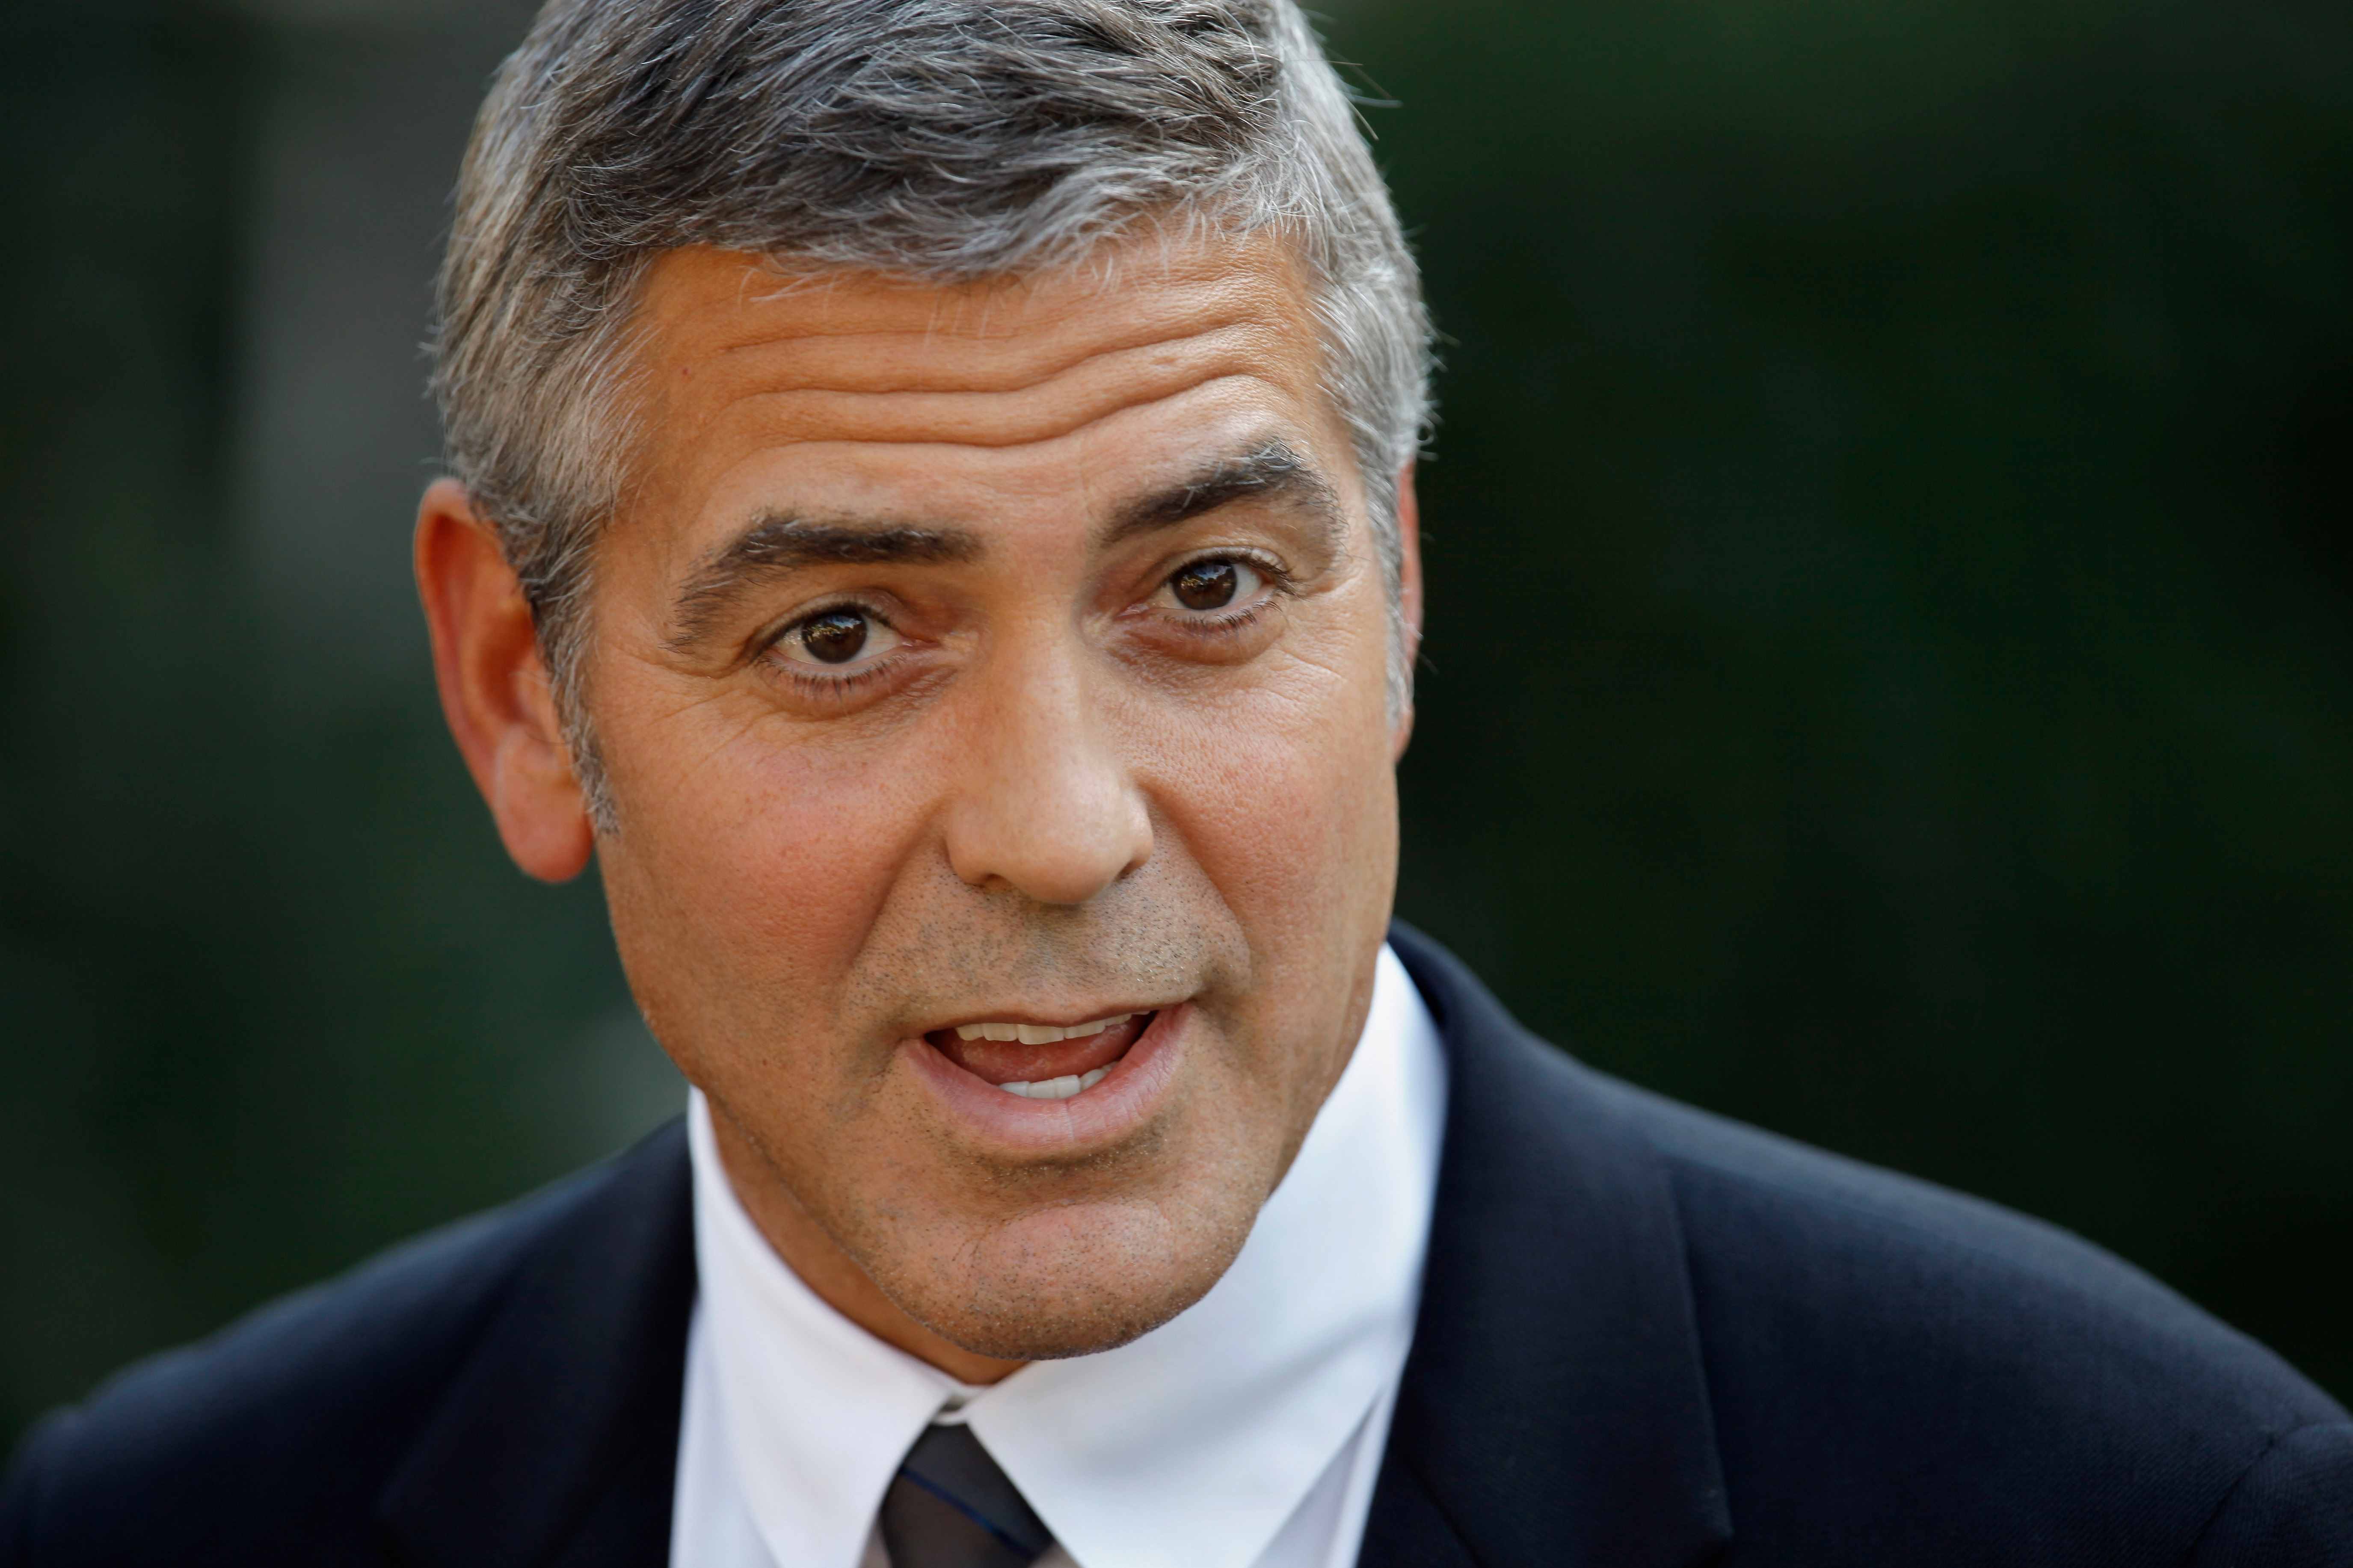 George Clooney Wallpaper For Laptop